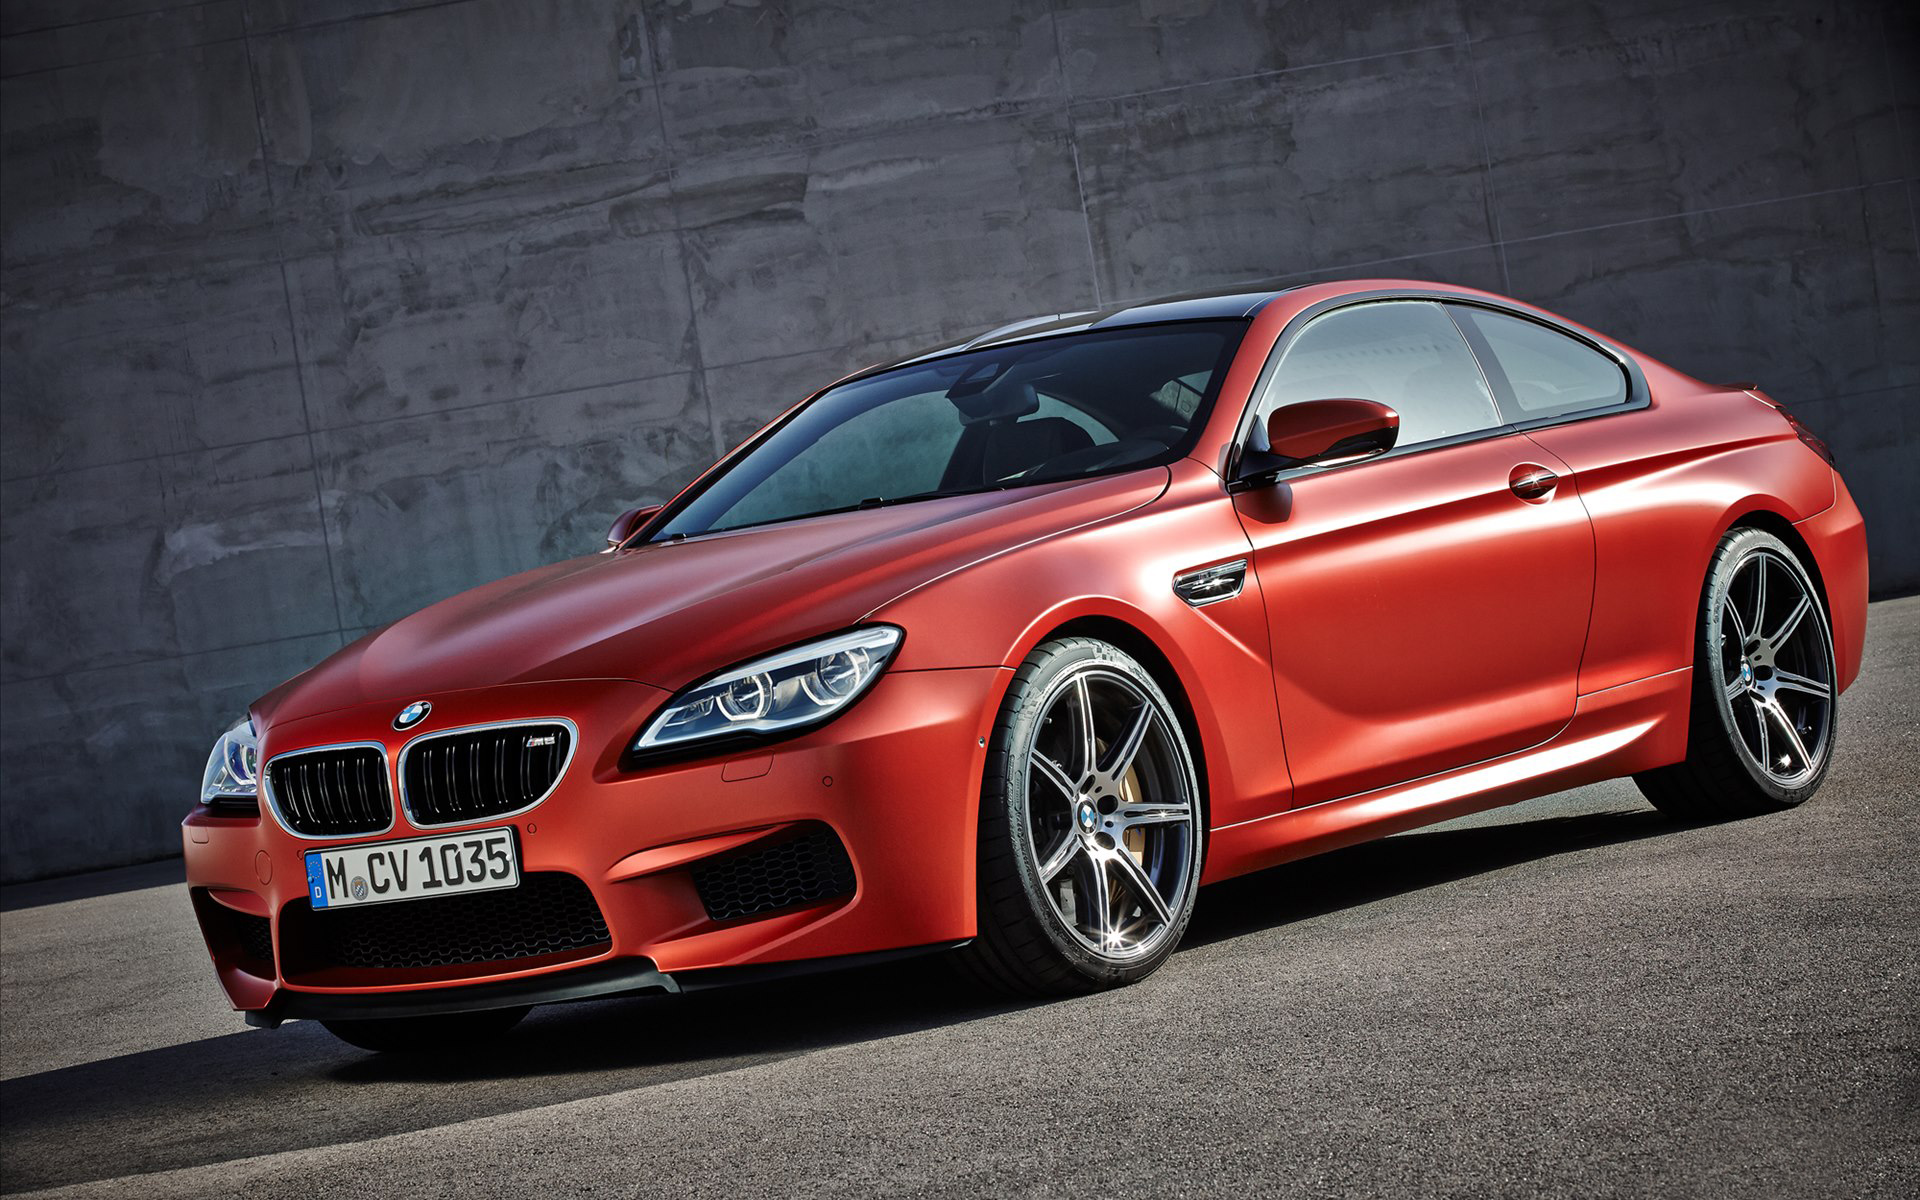 2015 BMW M6 Coupe Wallpaper | HD Car Wallpapers